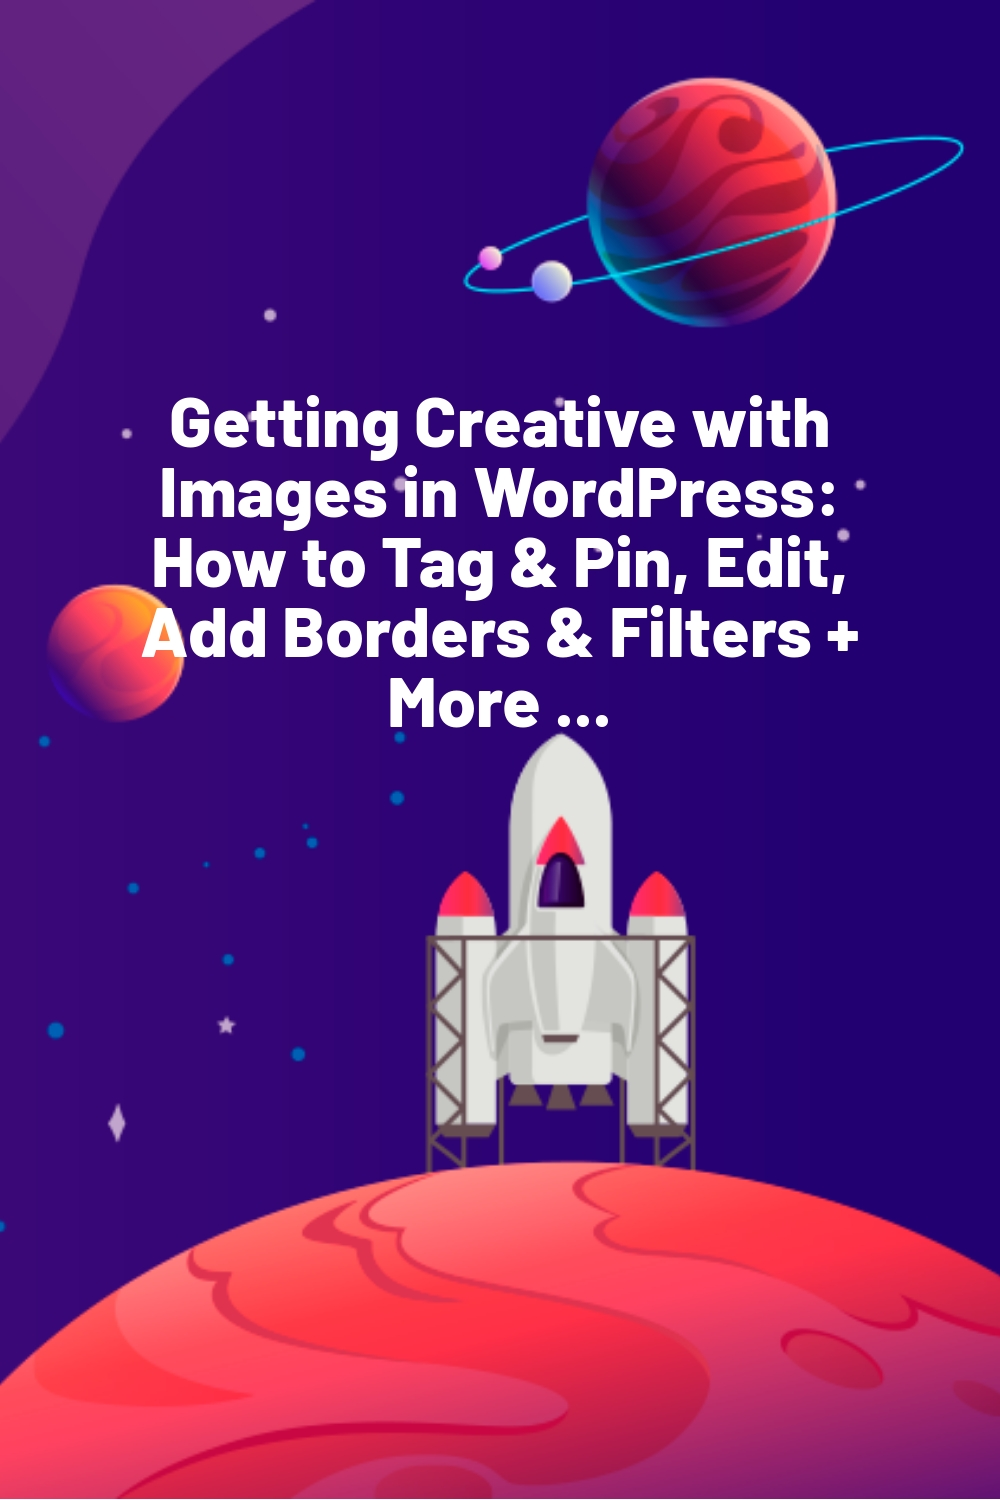 Getting Creative with Images in WordPress: How to Tag & Pin, Edit, Add Borders & Filters + More …